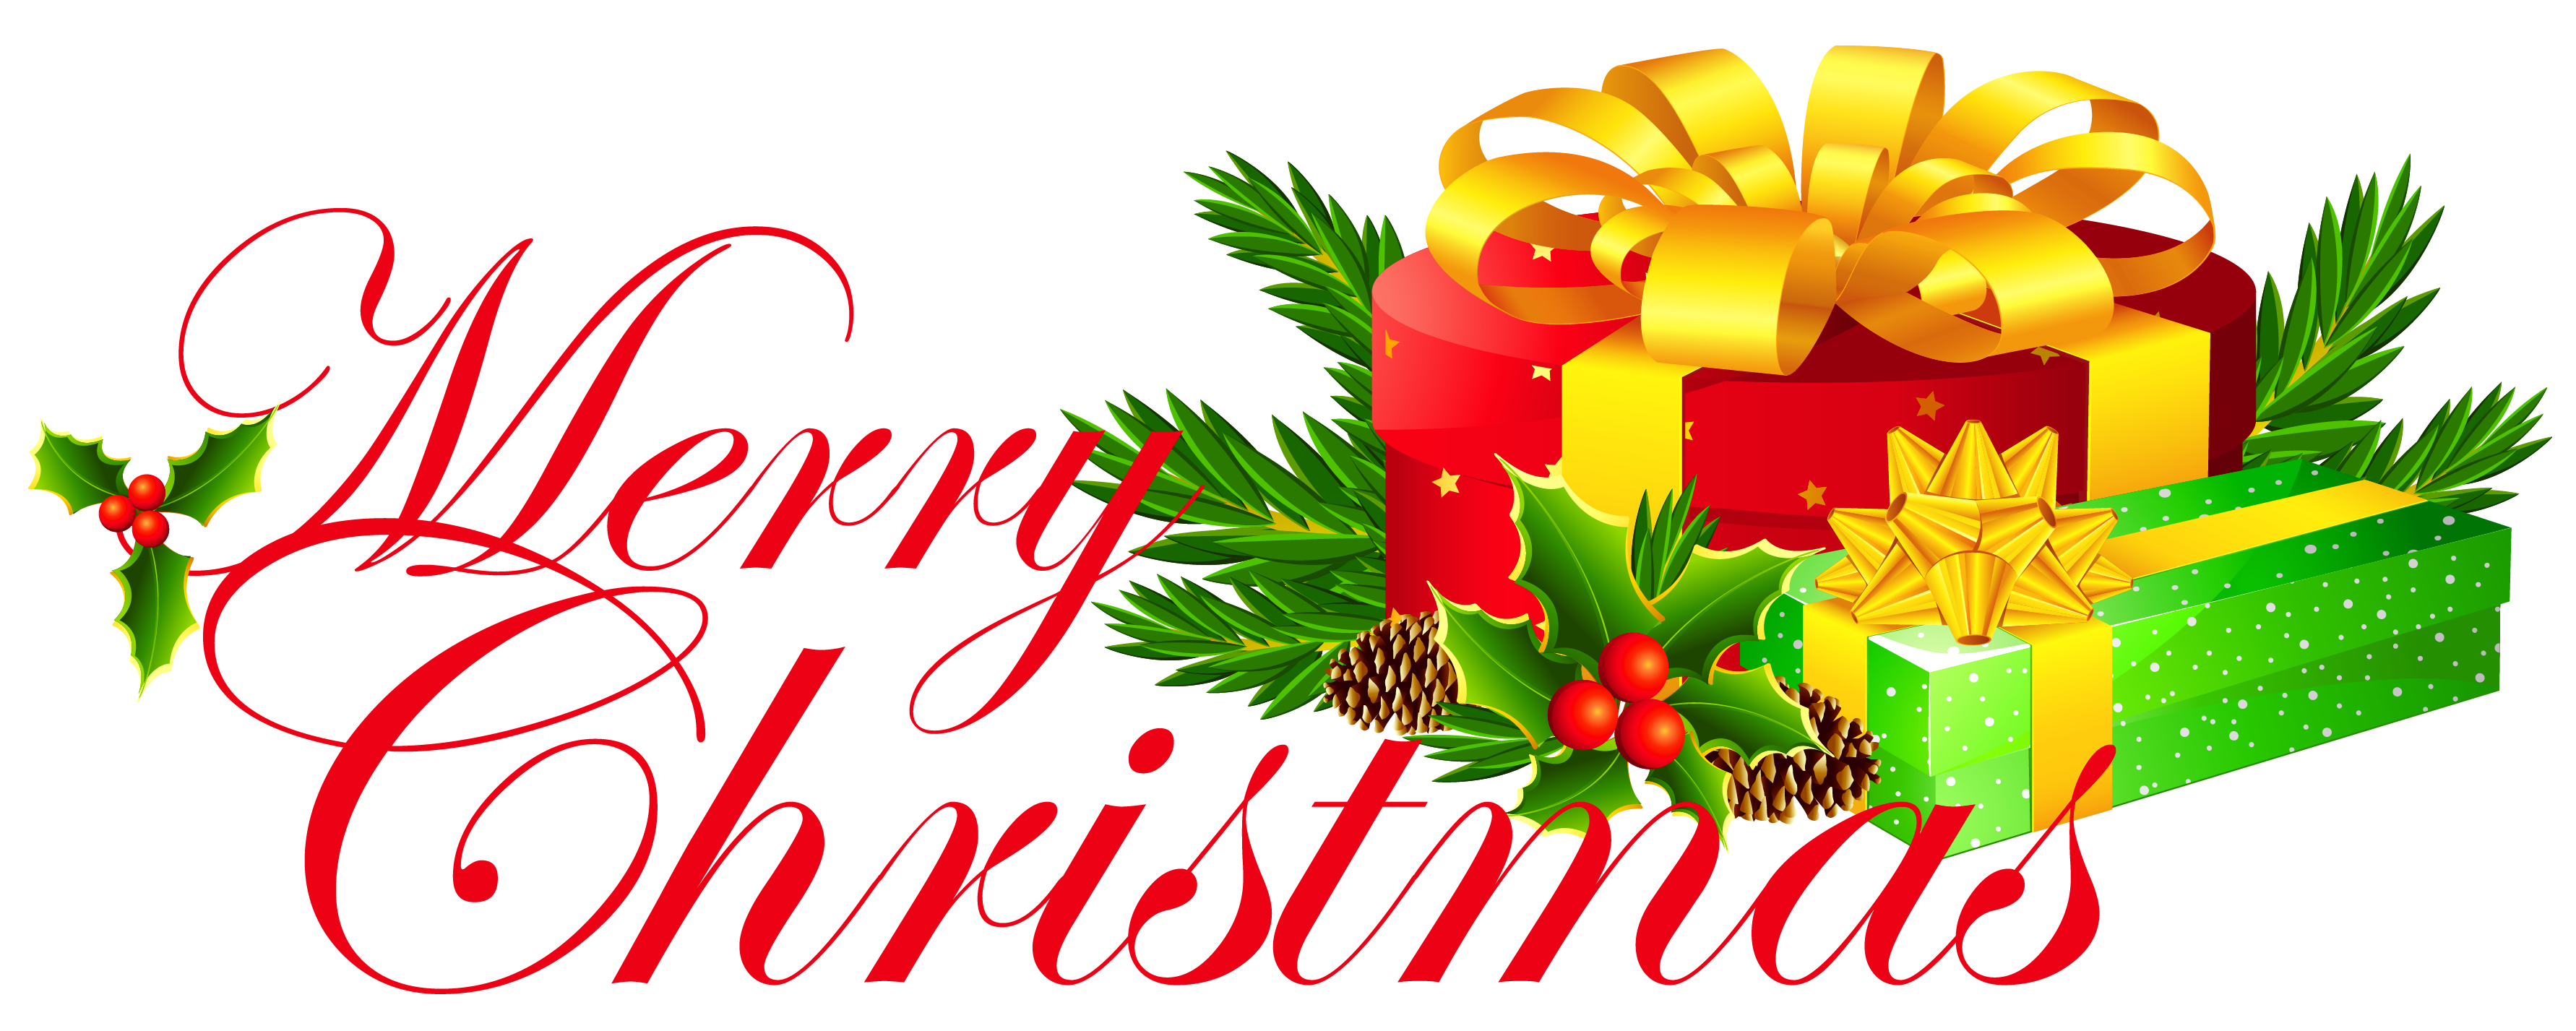 3565x1427 Merry Christmas Free Clip Art Many Interesting Cliparts